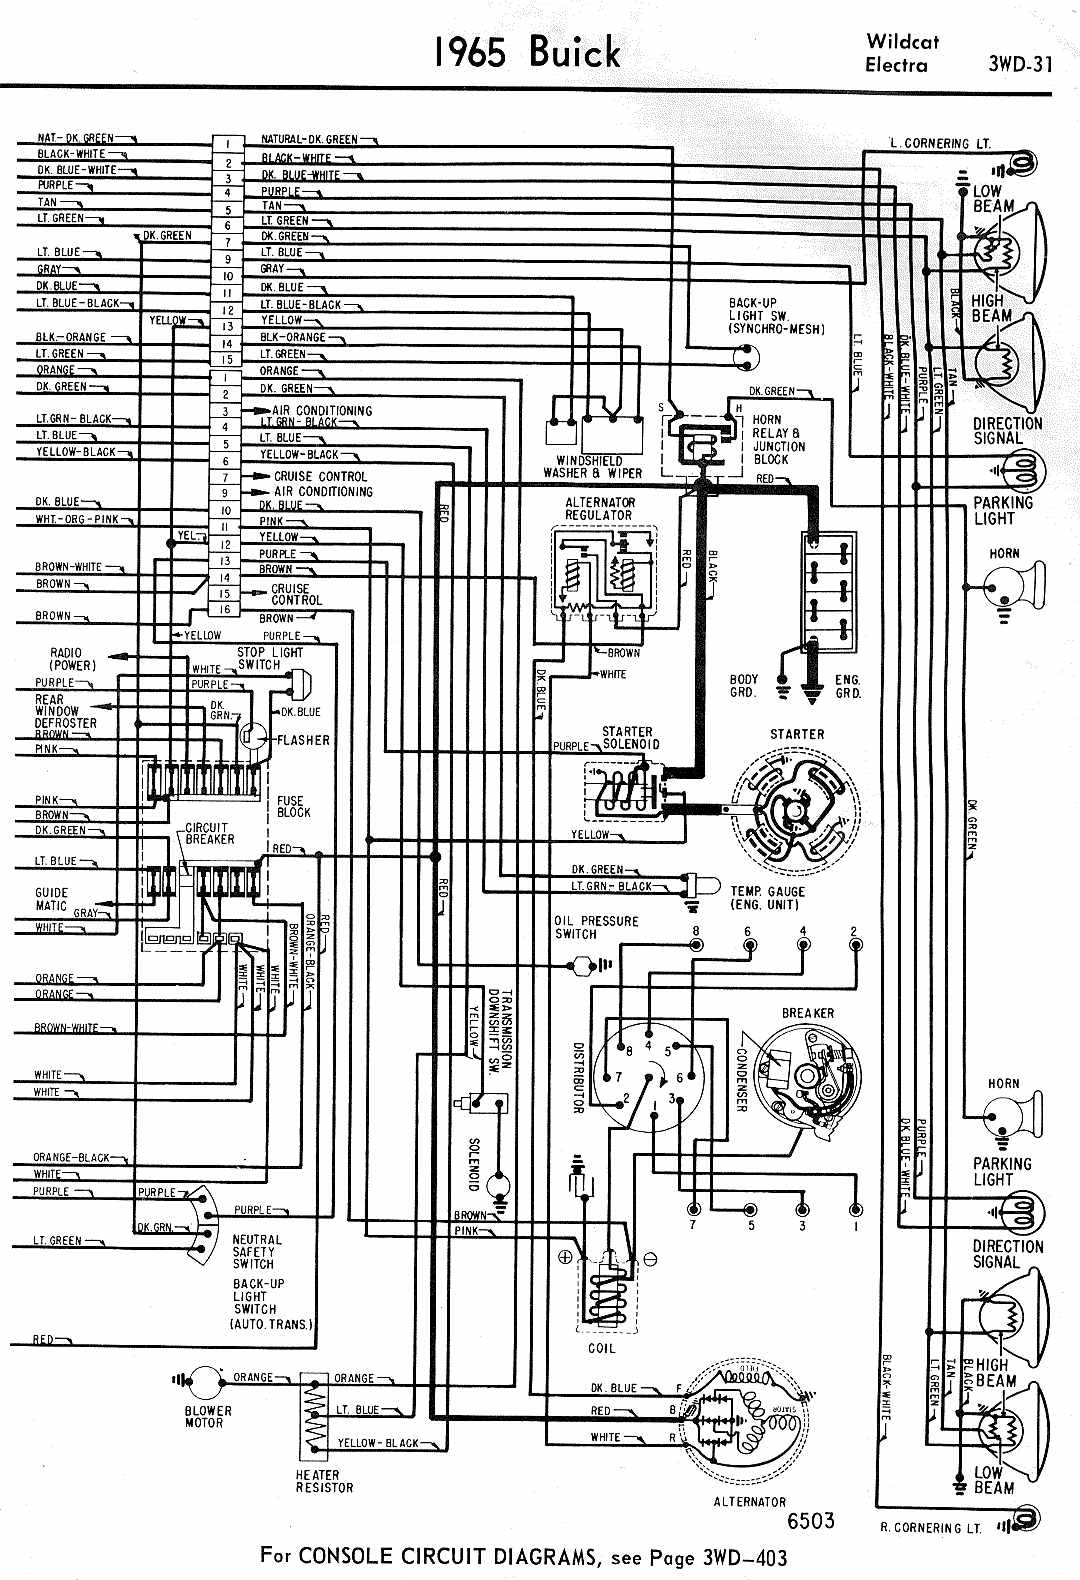 small resolution of wiring diagrams of 1965 buick riviera part 1 wiring diagram data val wiring diagram for 1963 buick special and skylark part 2